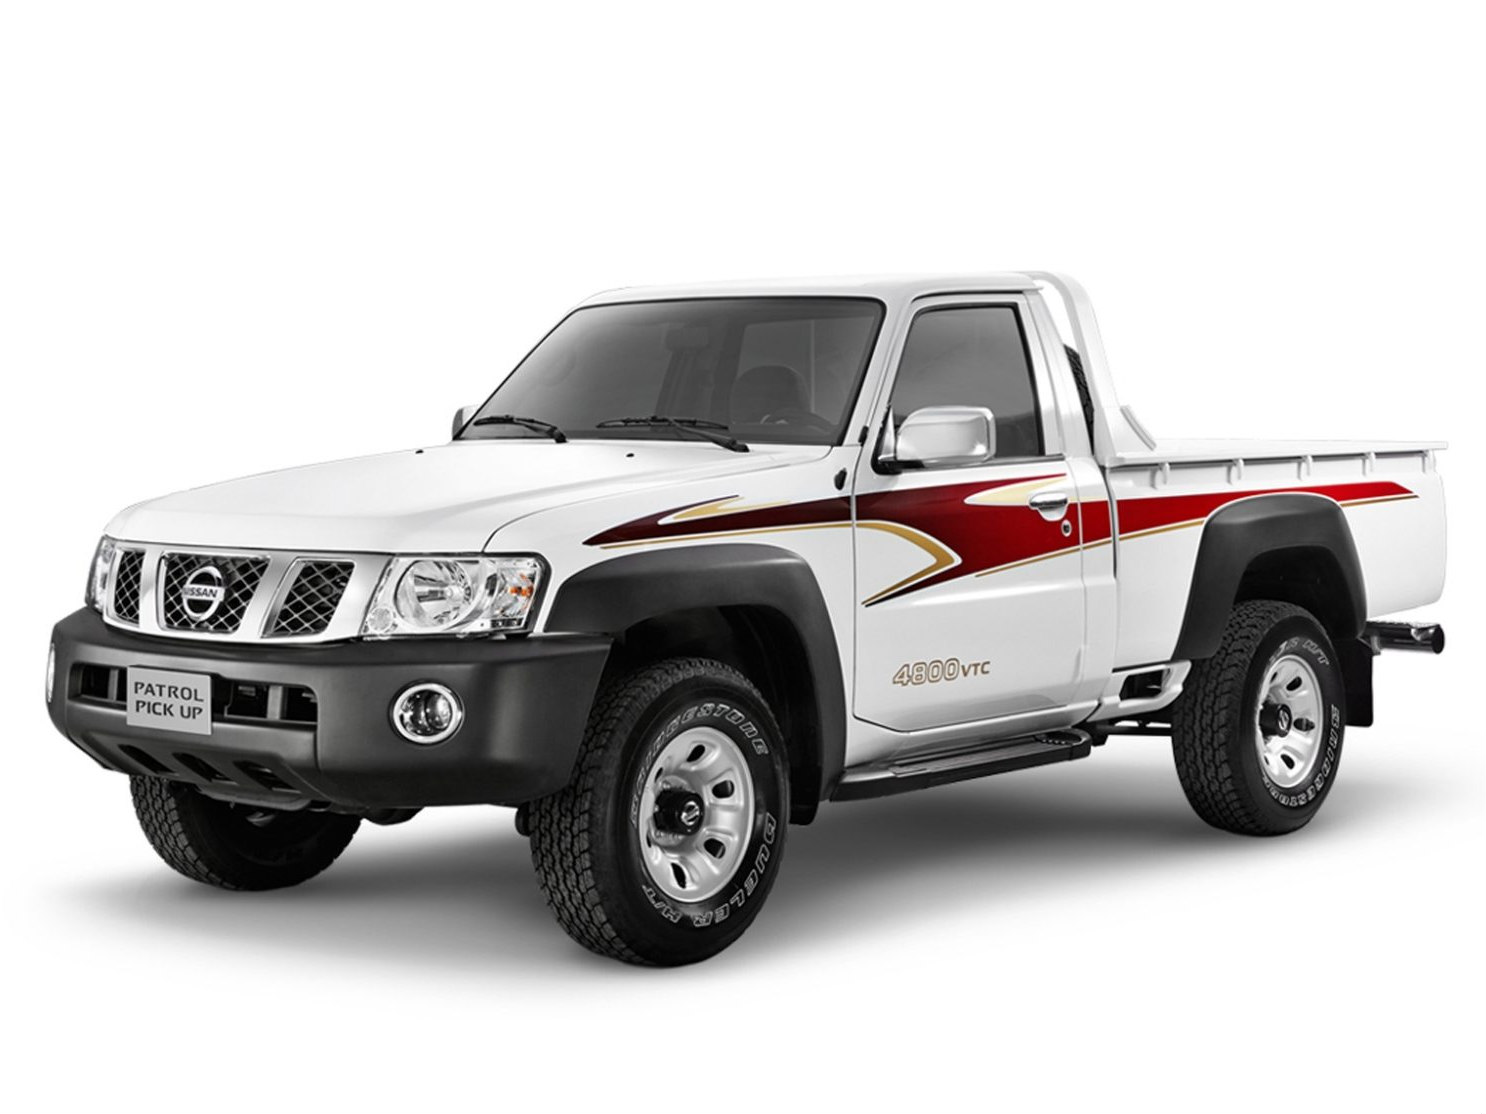 Nissan Patrol Pick Up 2018 Sgl Manual In Uae New Car